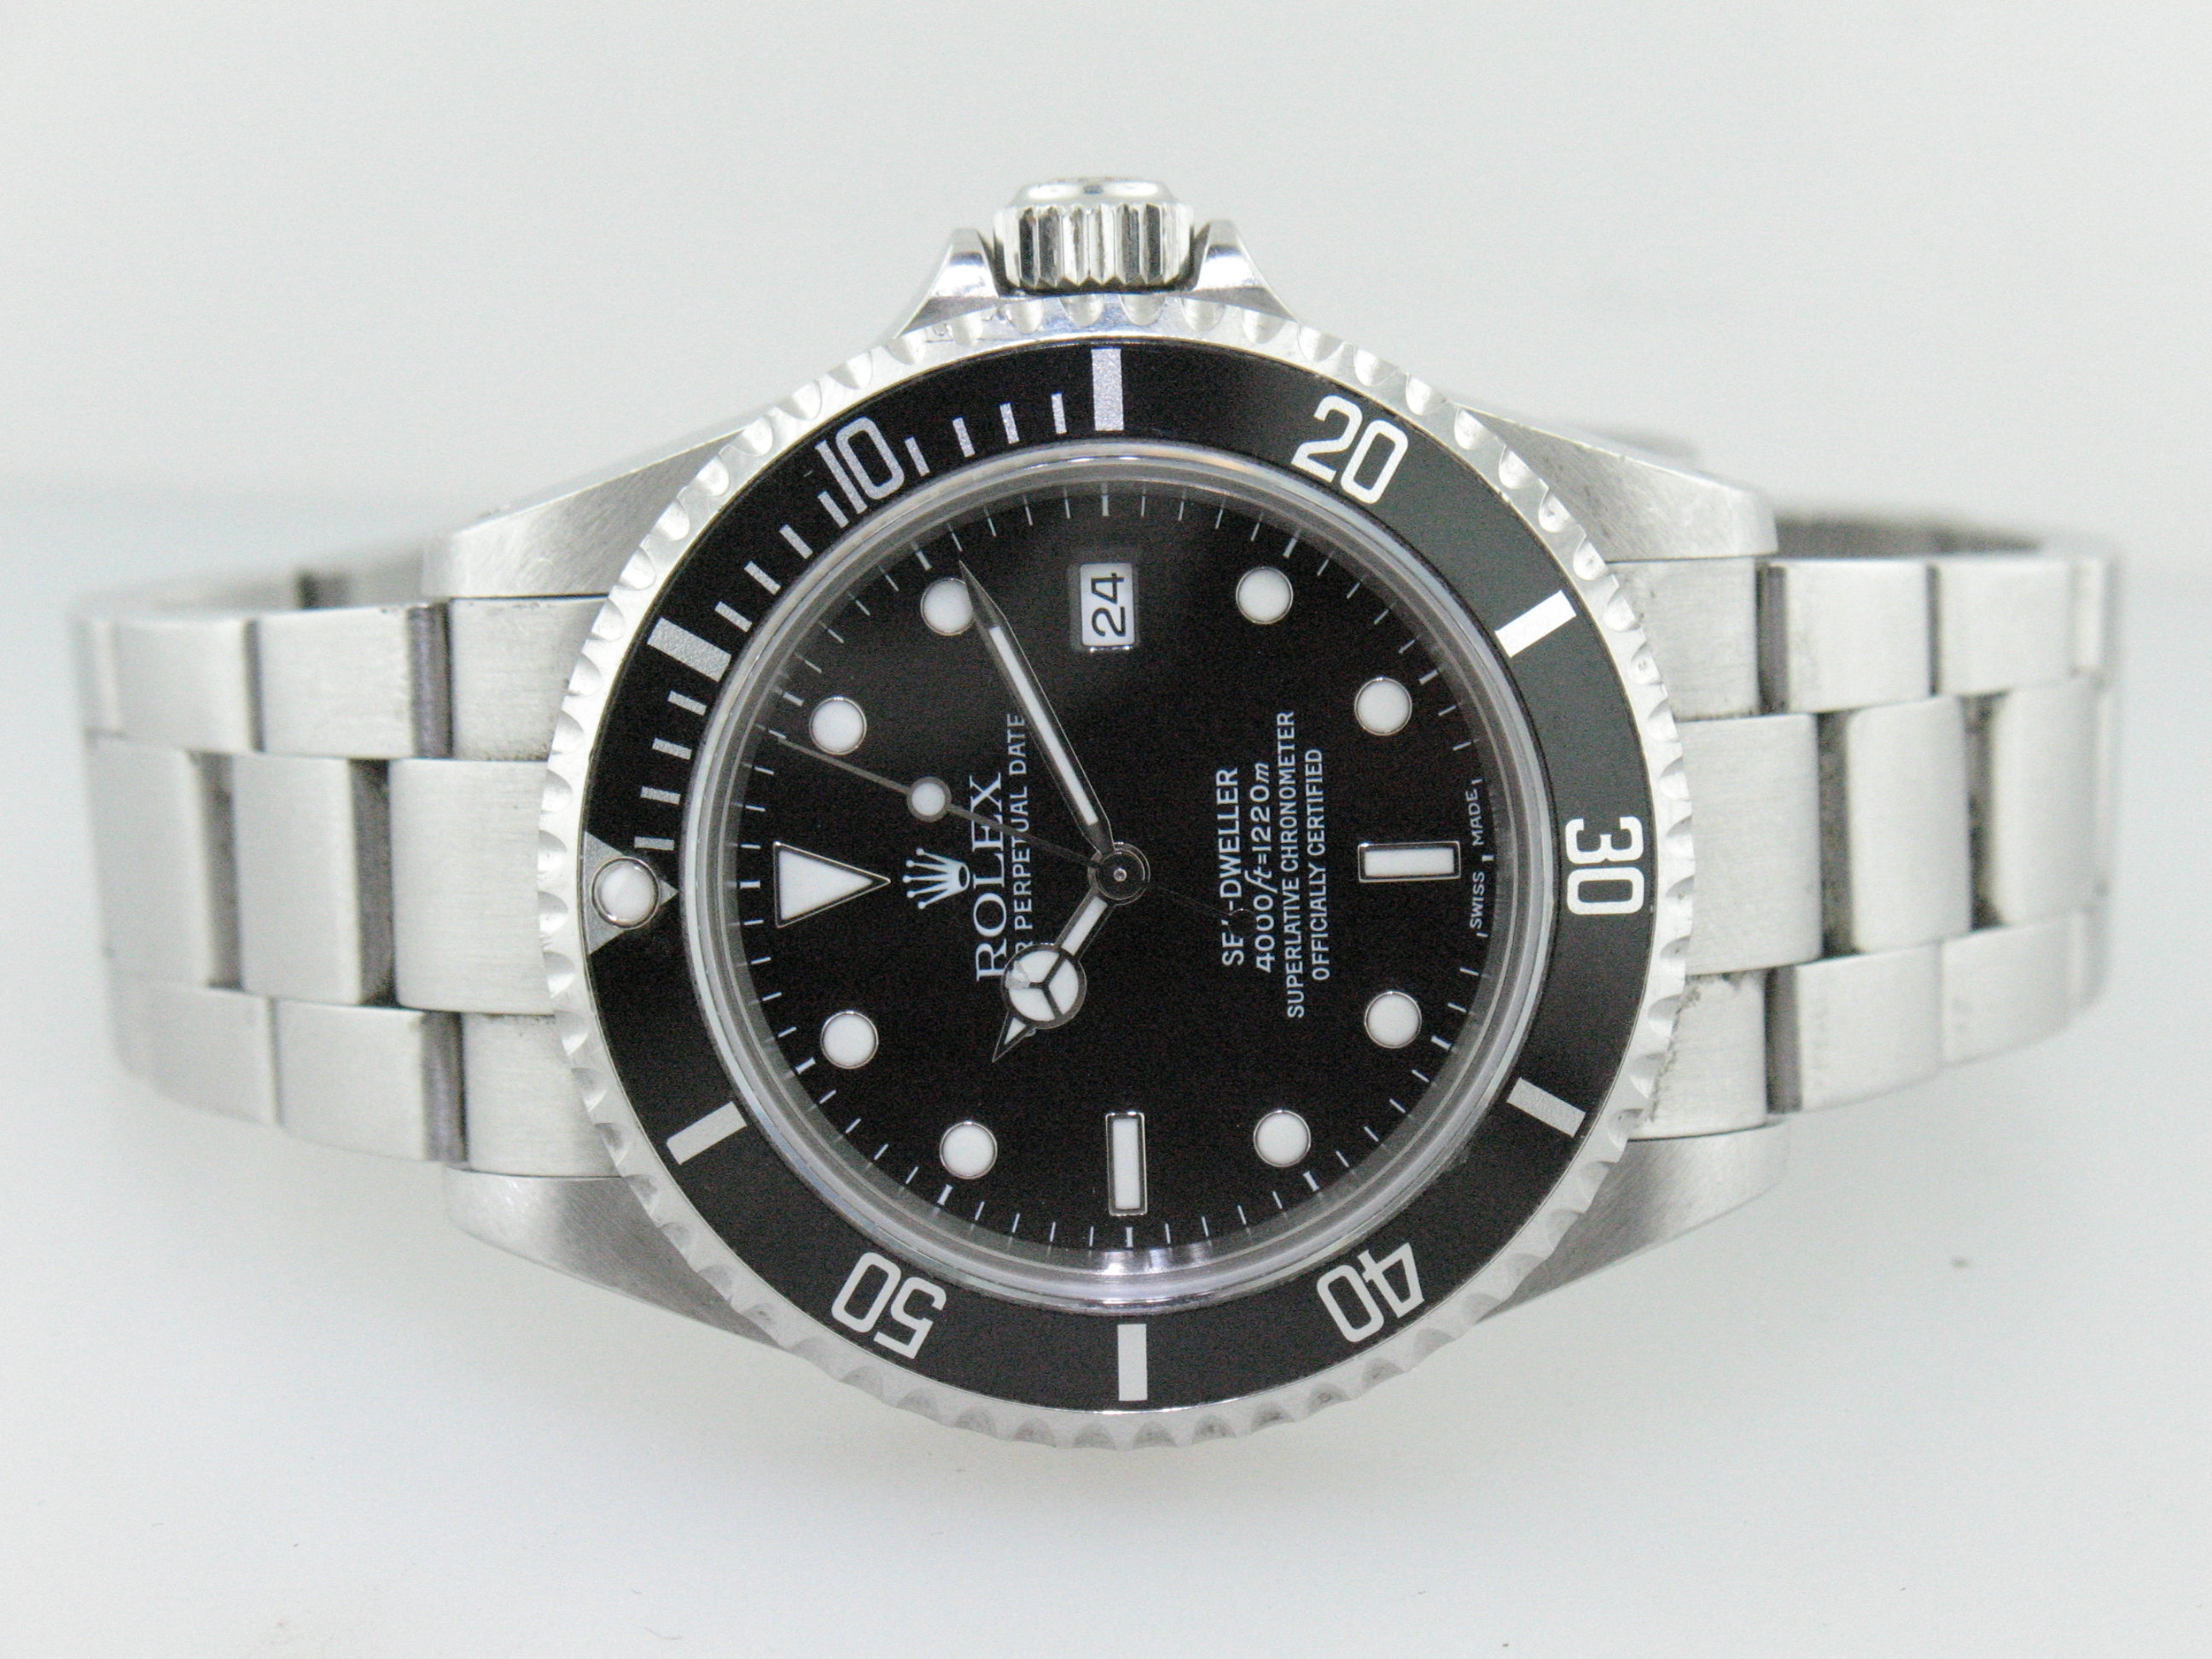 Rolex Seadweller Stainless Steel Reference 16600 Year 2002